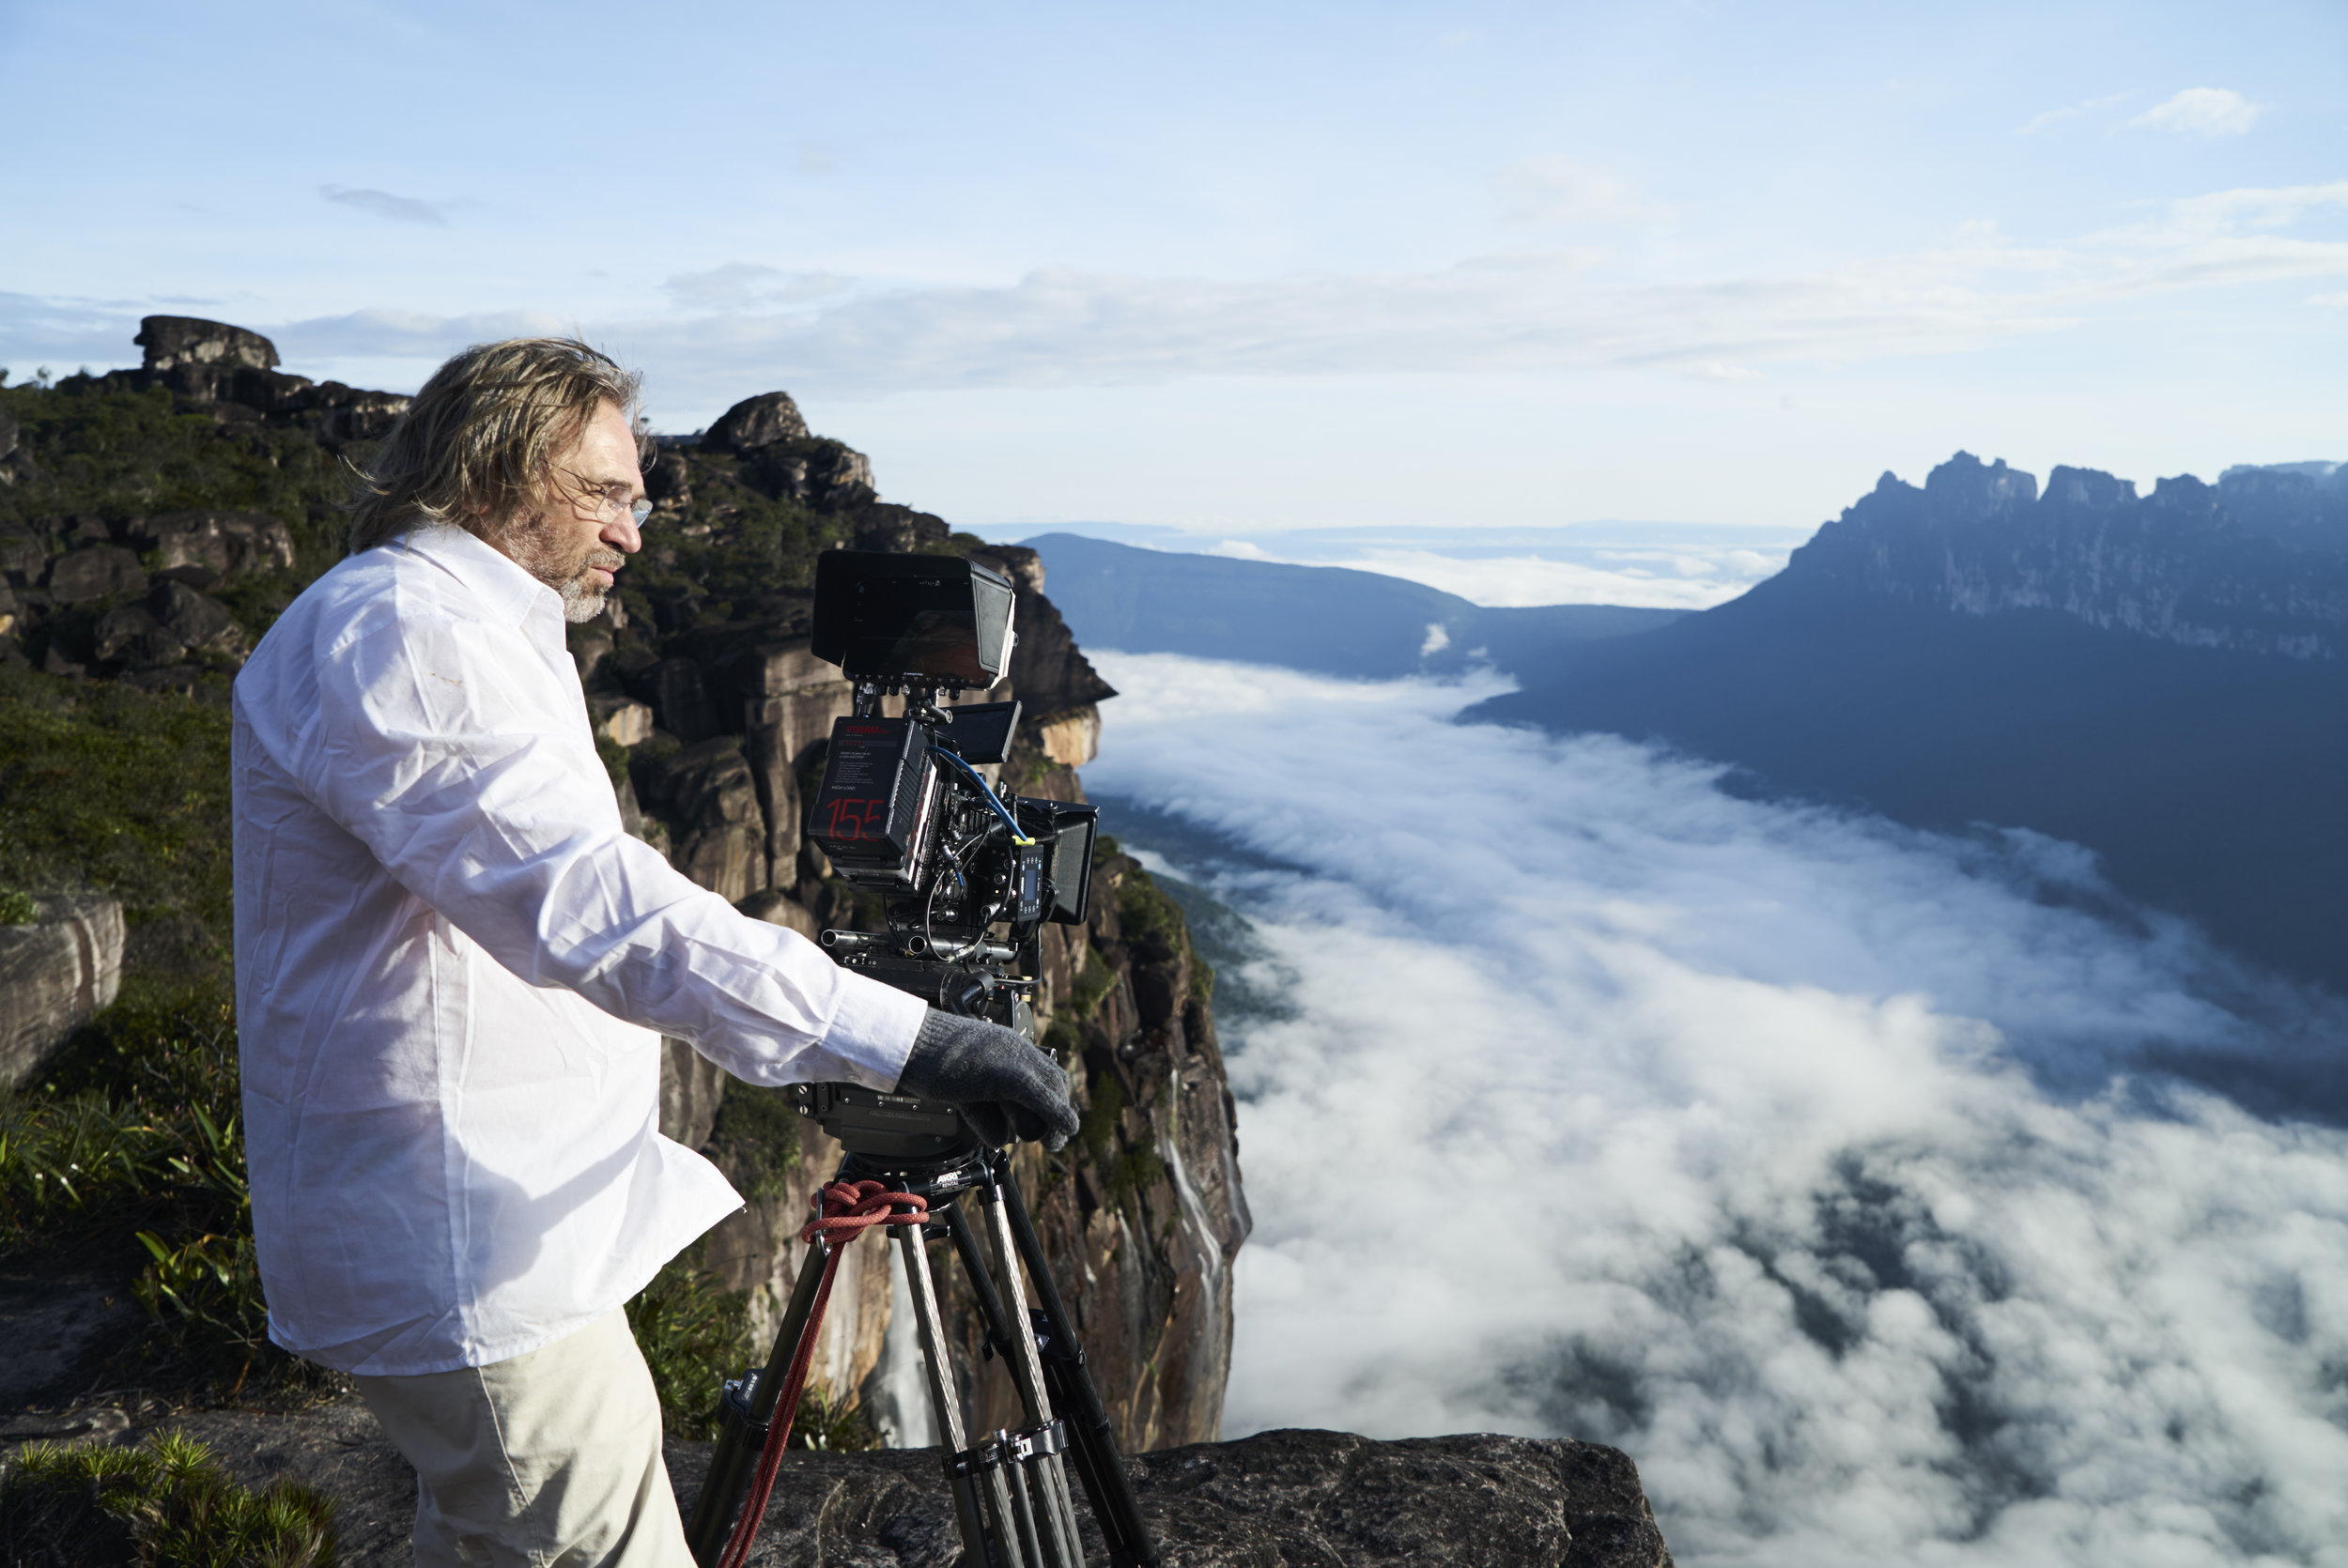 Director Viktor Kossakovsky sets up a shot perilously close to Angel Falls in the documentary Aquarela